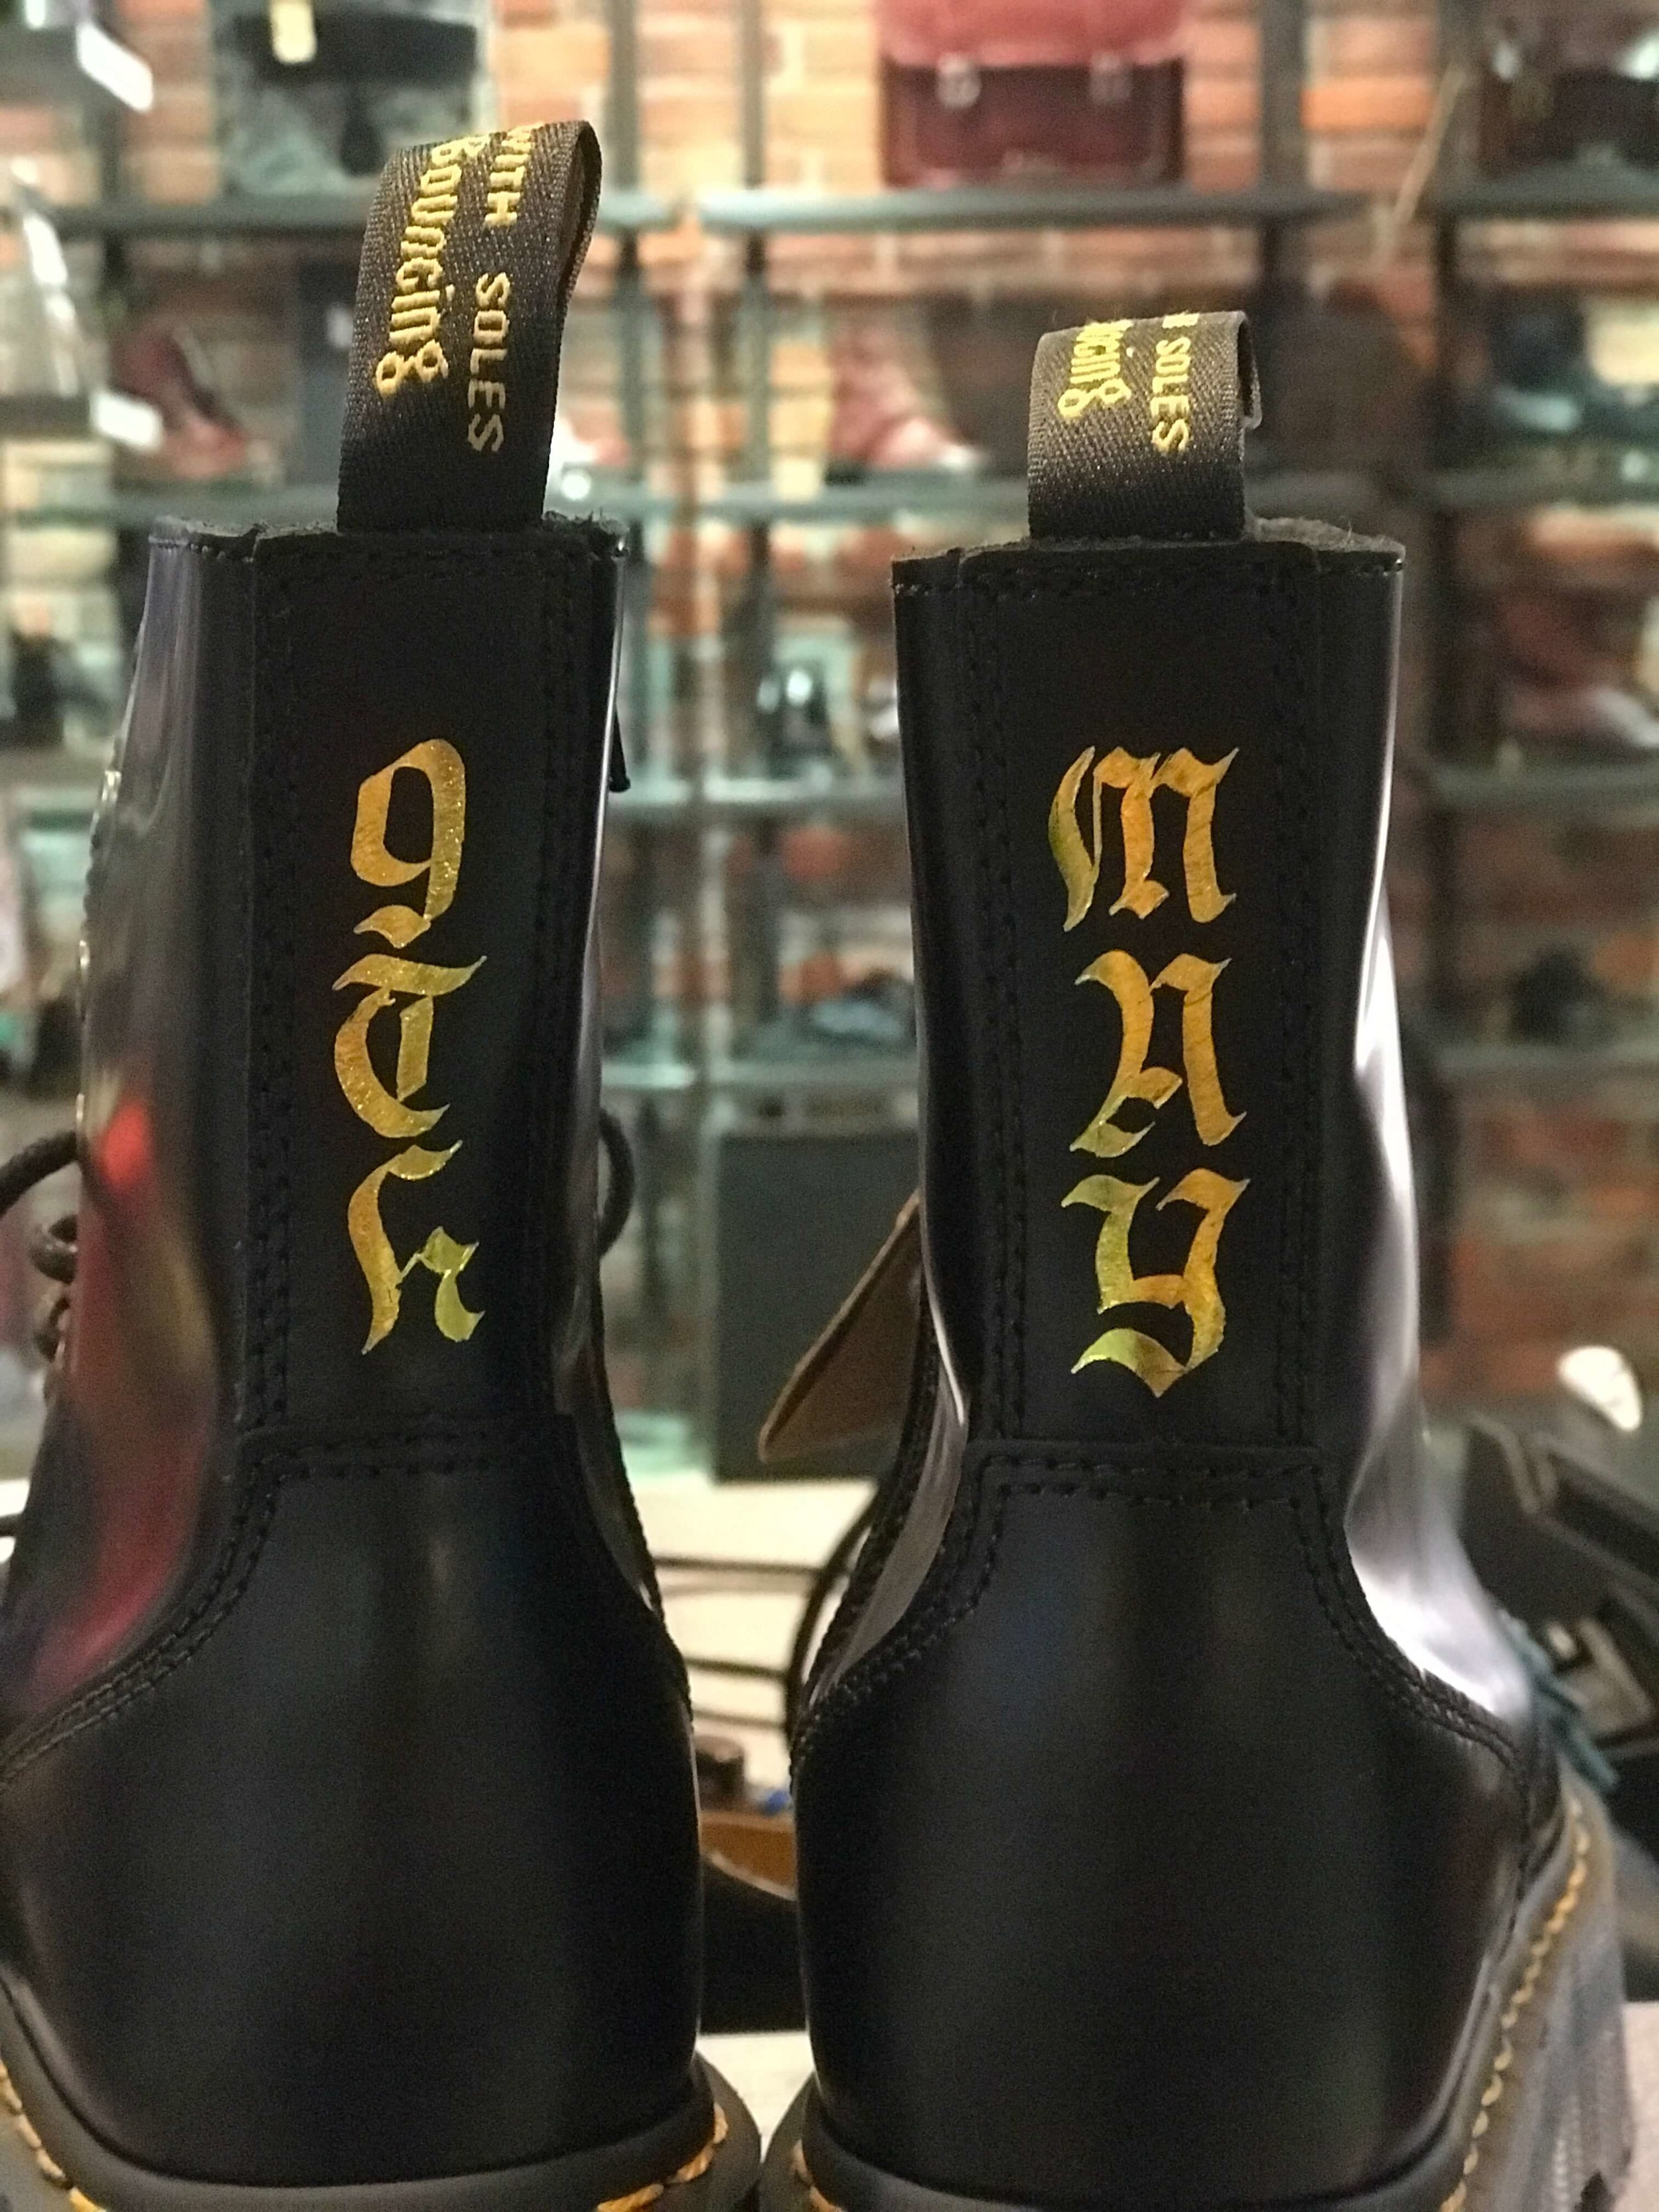 Gothic or Blackletter letters on a customer's shoe. It was the customer's birthday gift.